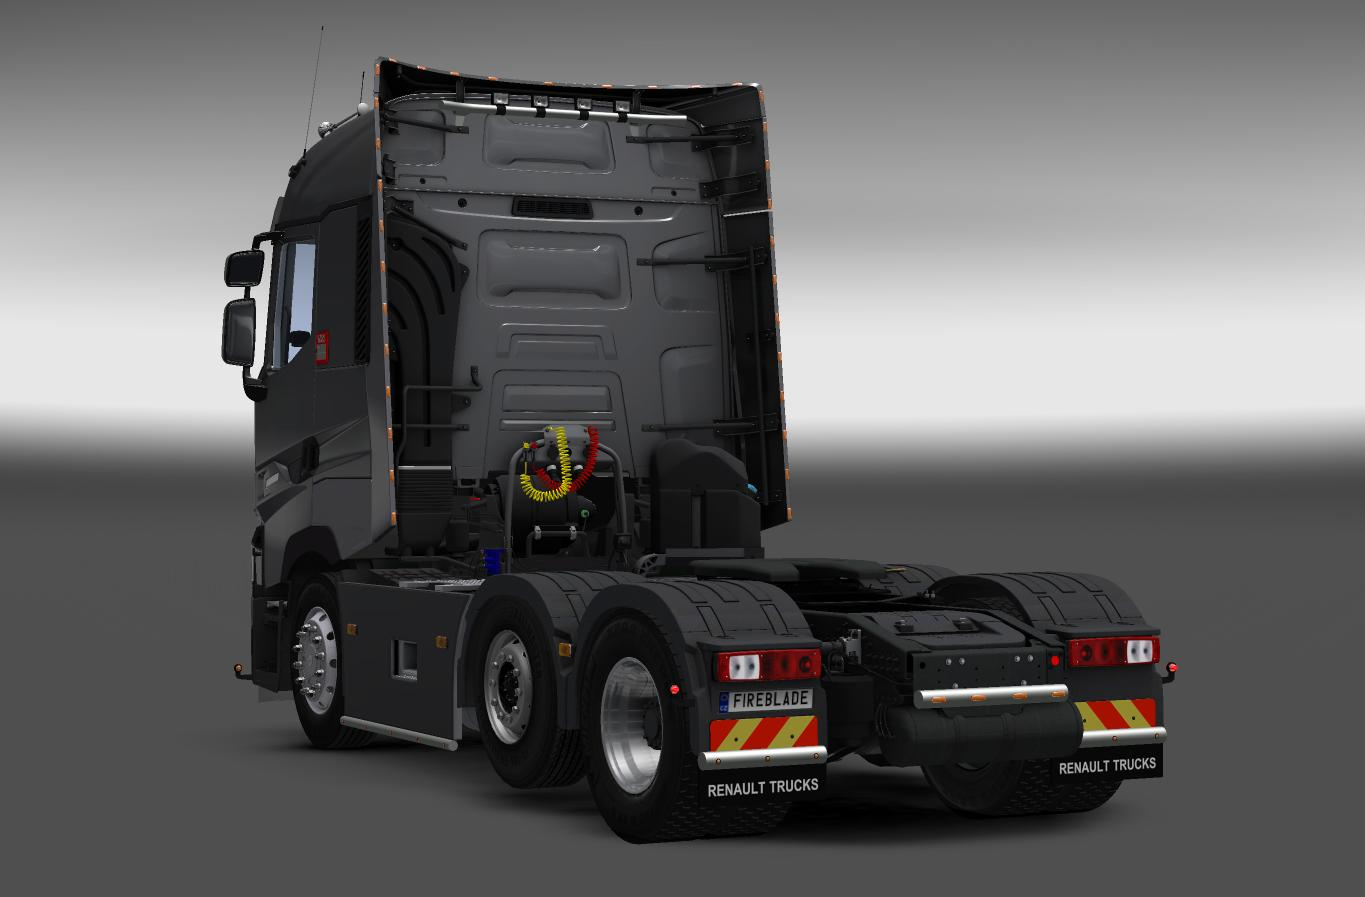 Renault T New interior v6.0 1.25.x - 1.26.x - Modhub.us